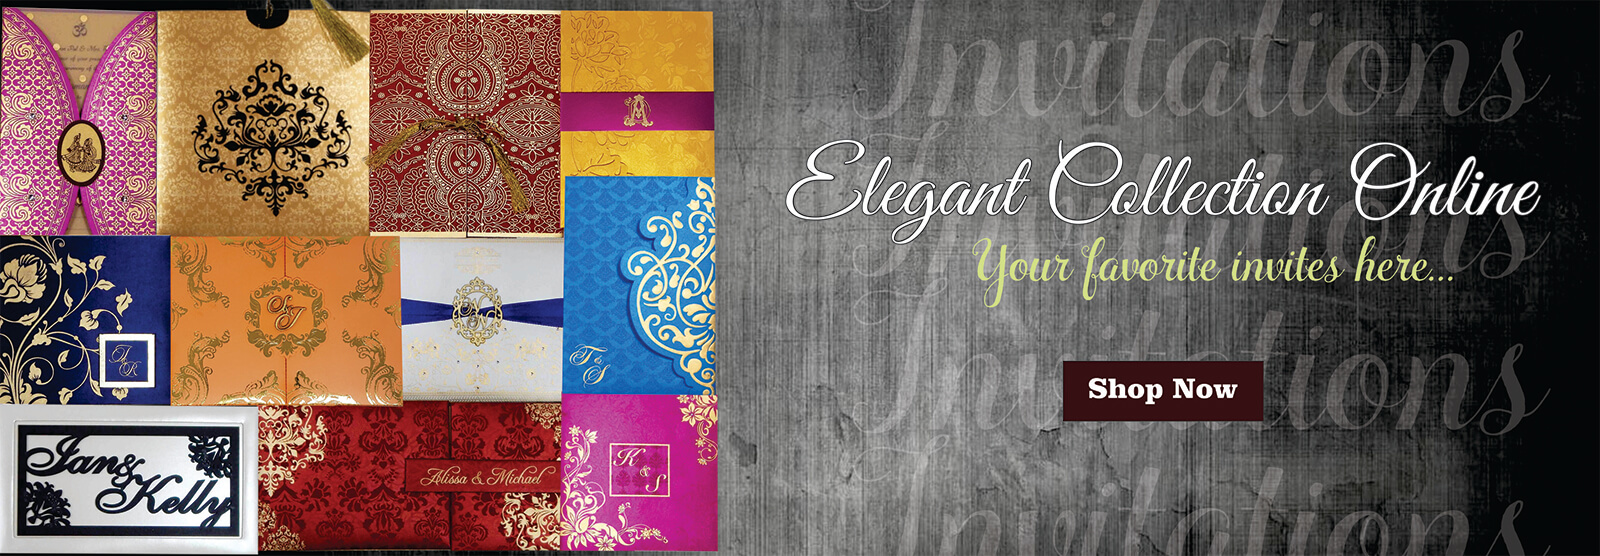 Wedding Invitation Cards Buy Online: Buy Indian Wedding Invitations